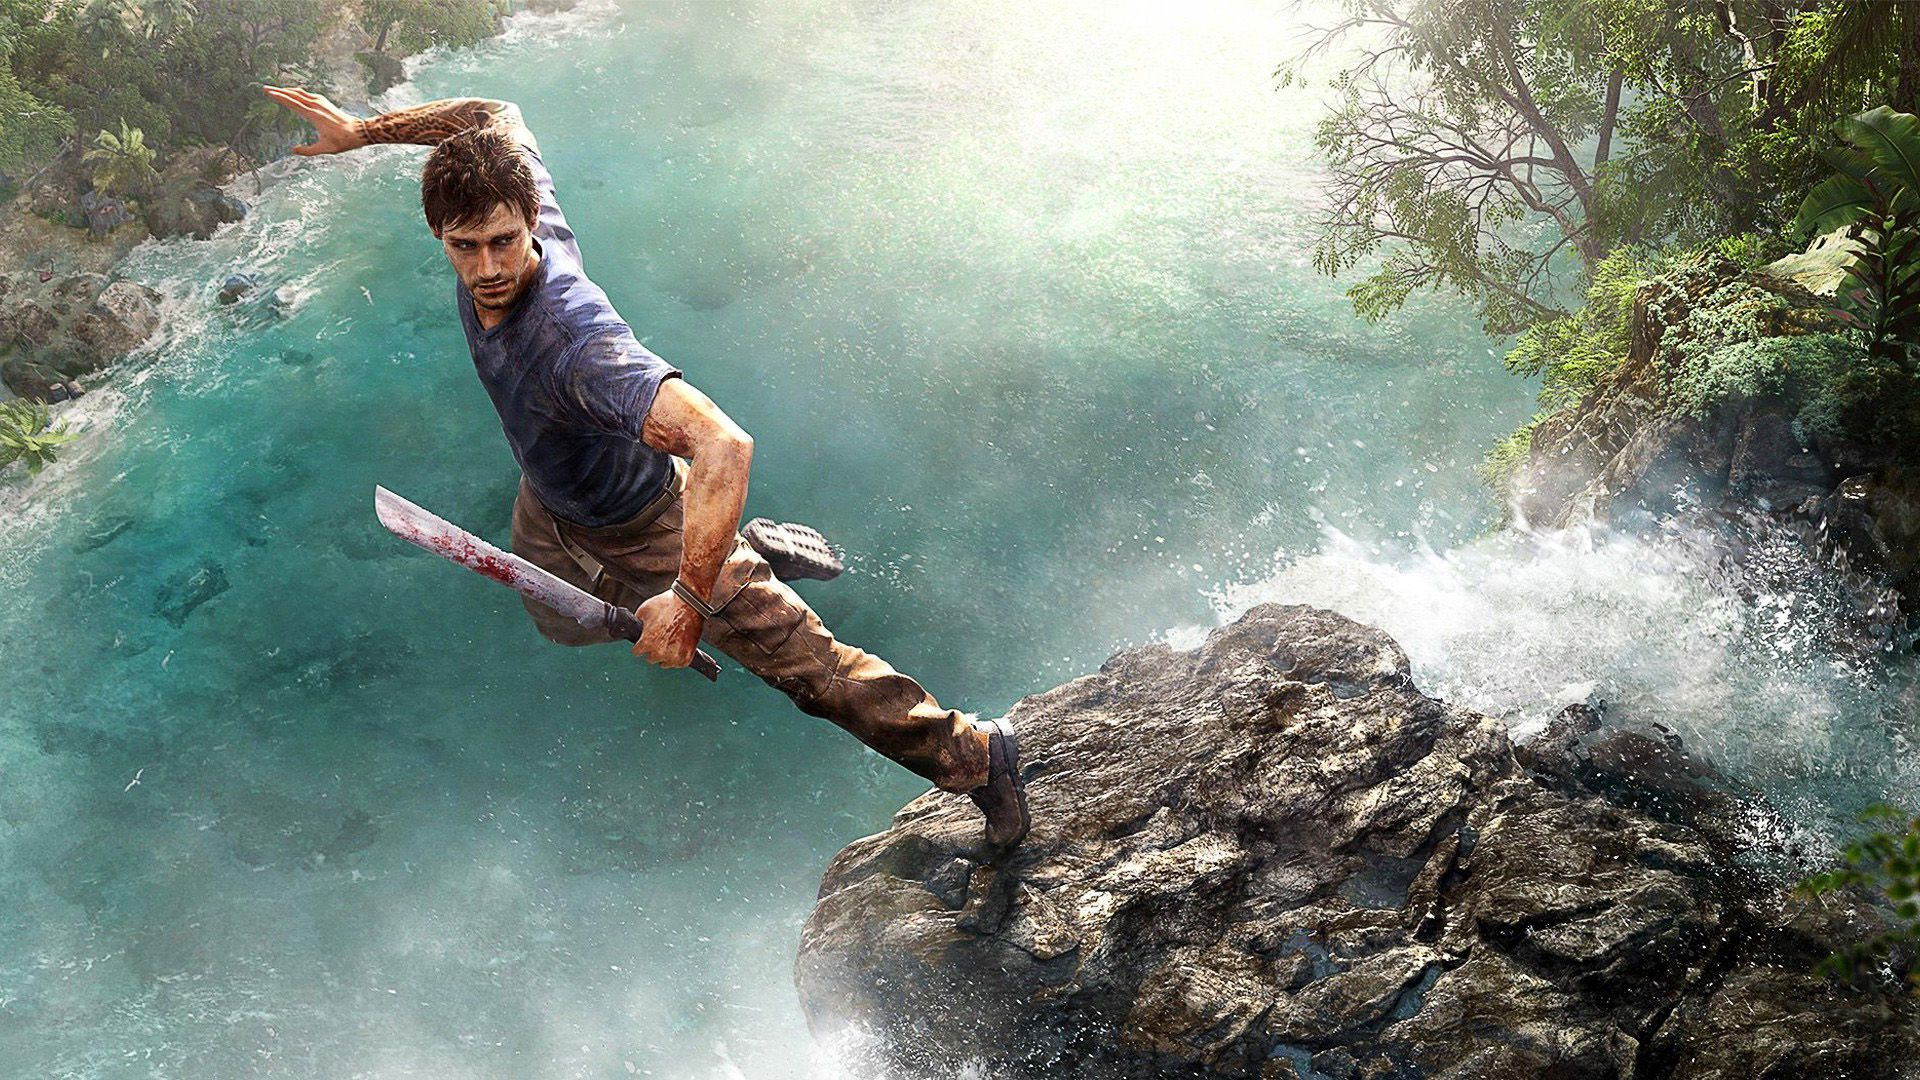 free far cry hd wallpaper apk download for android getjar